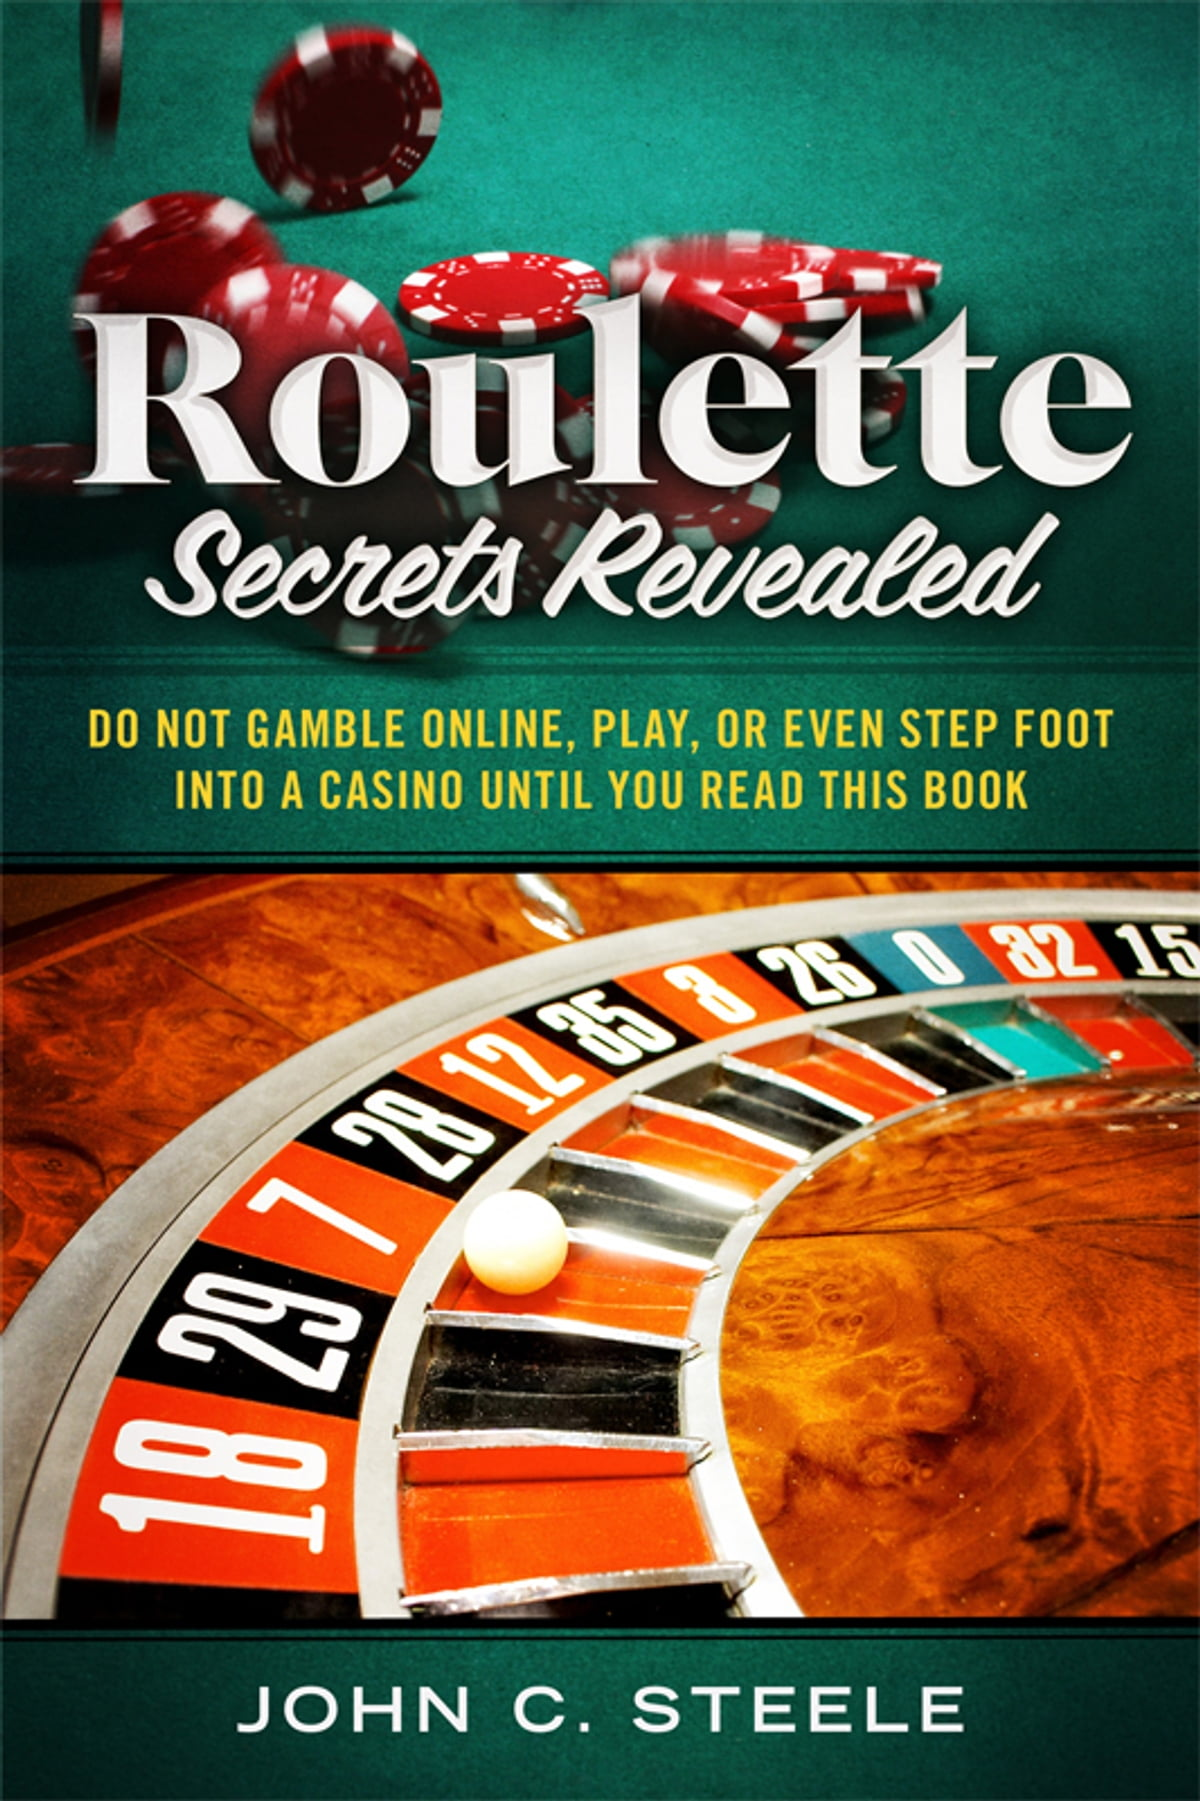 Online roulette secrets revealed liquor & gambling